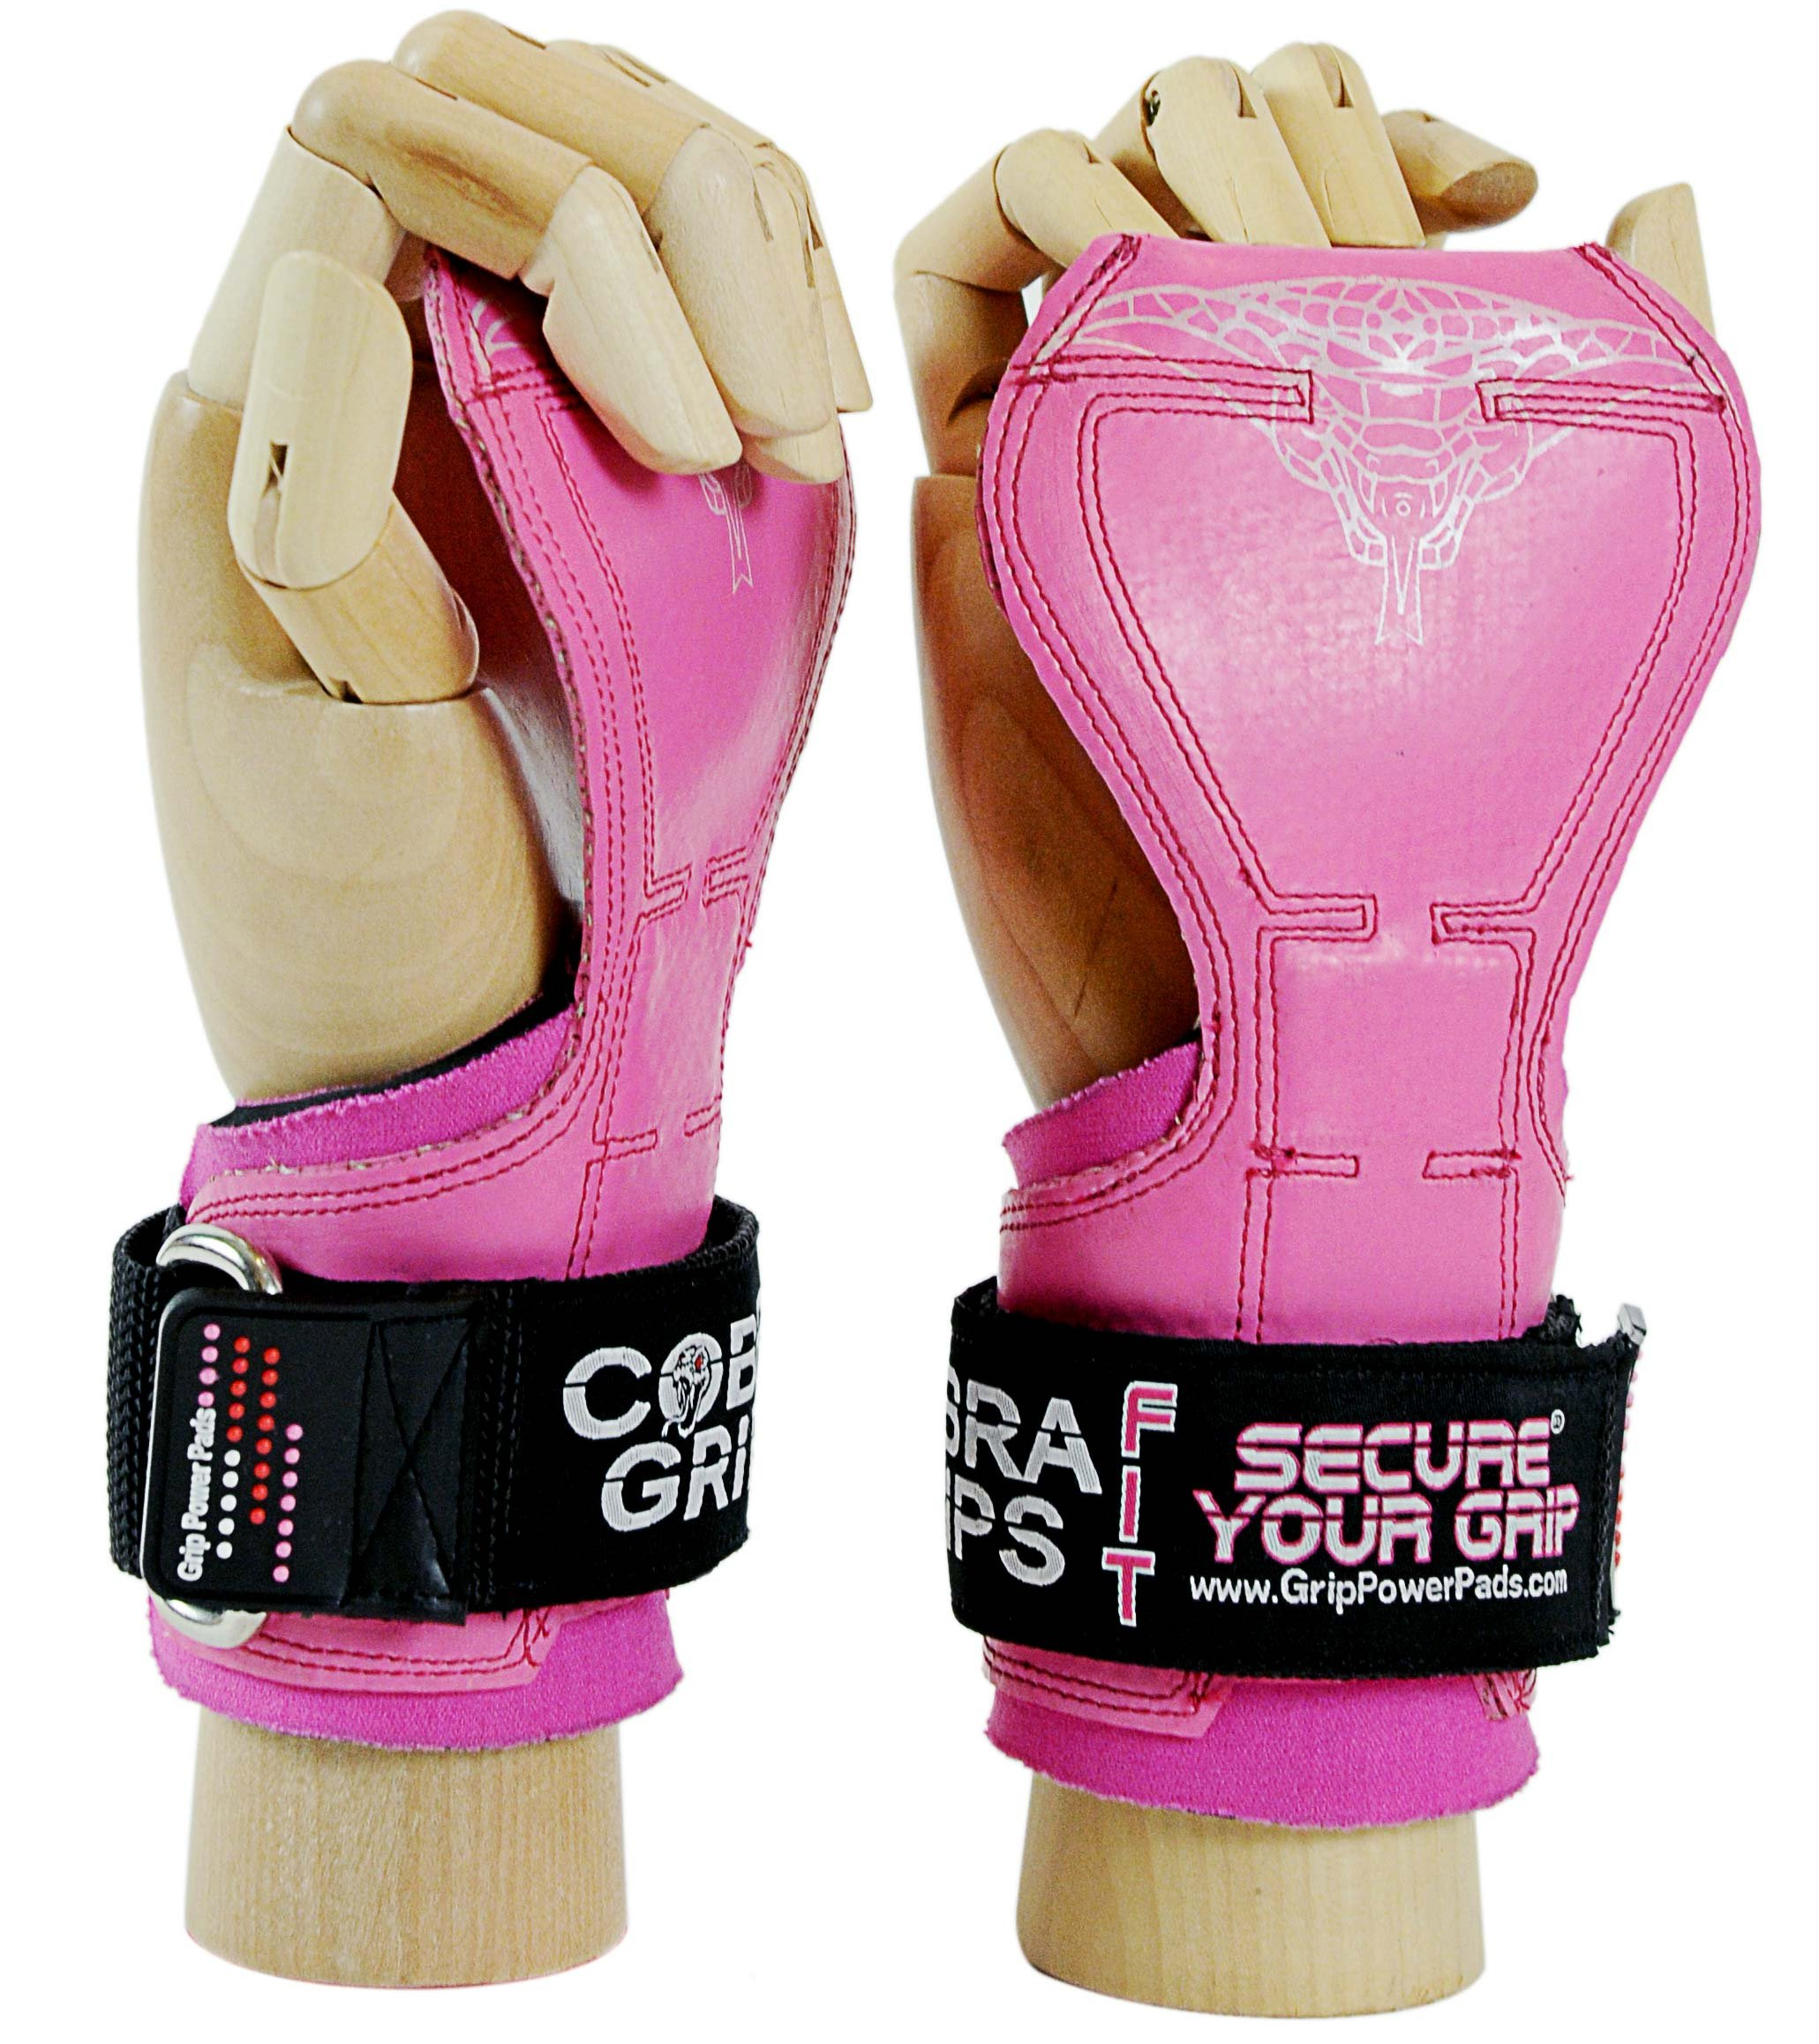 Cobra Grips FIT Weight Lifting Gloves, Heavy Duty Straps, Alternative to Power Lifting Hooks, Power Lifting, for Deadlifts with Built in Adjustable Neoprene Padded Wrist Wrap Support. by Grip Power Pads